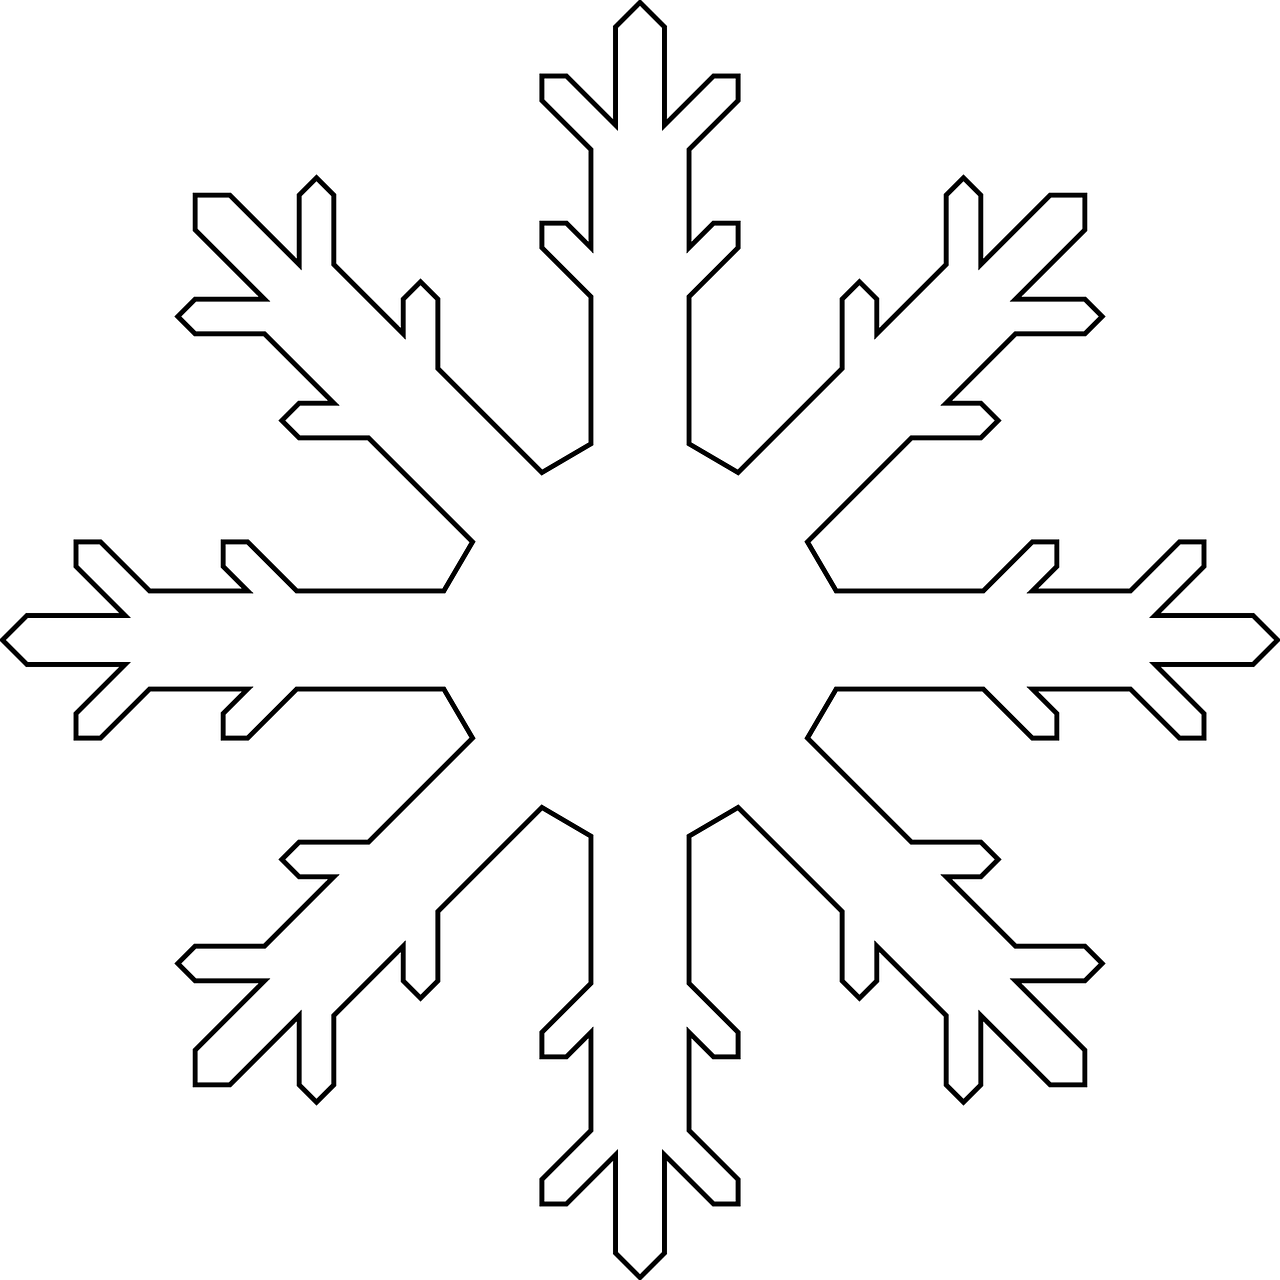 Snowflake free clipart templates printable picture freeuse library Snowflake Colouring Pages | Snowflake template, Template and Free ... picture freeuse library